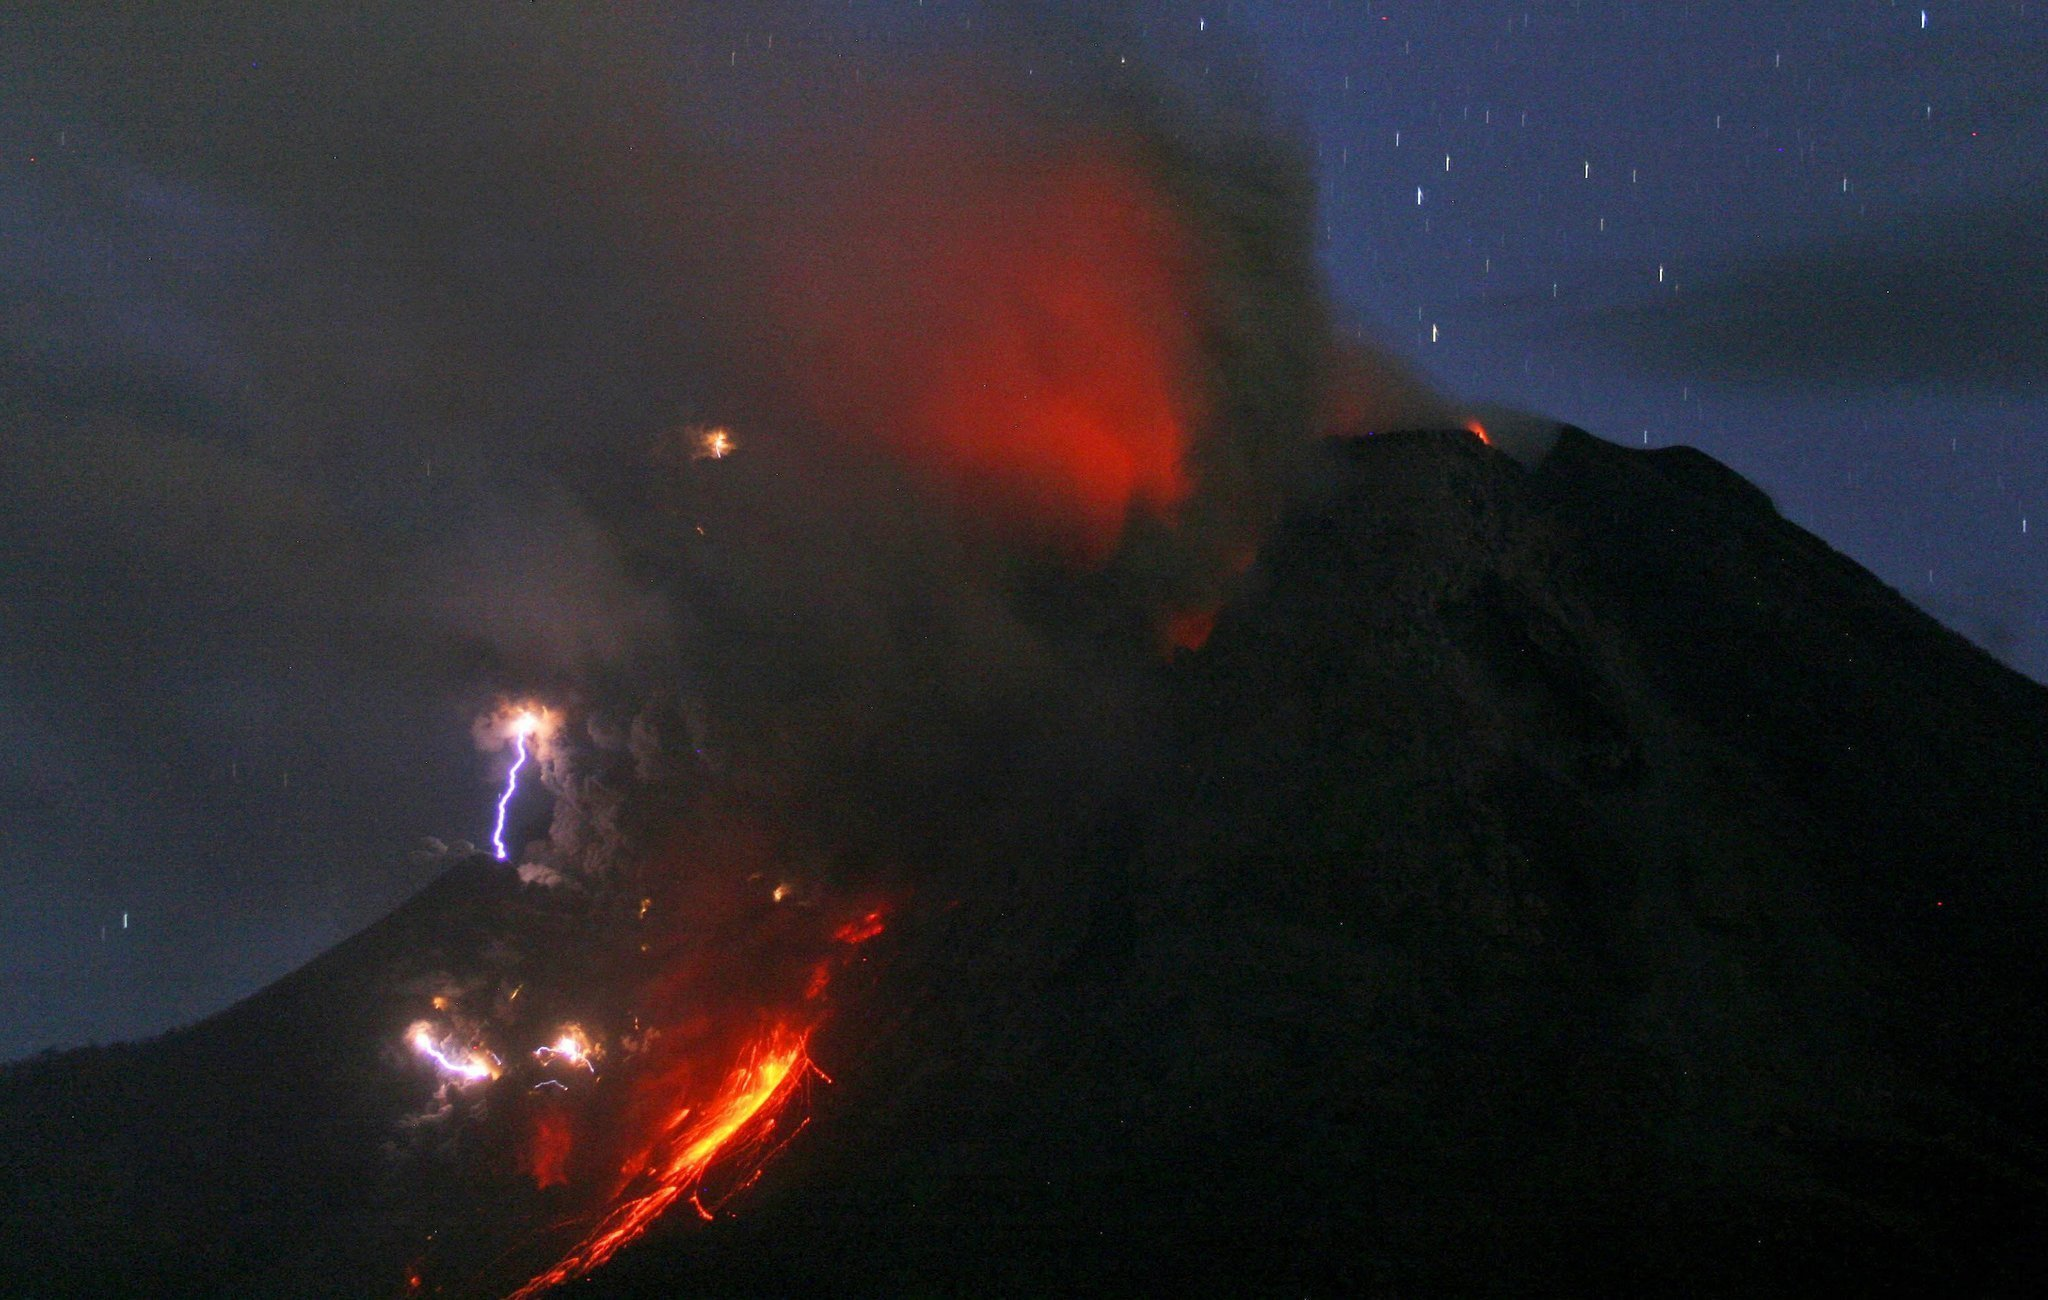 Image Of Asia Volcanic Lightning On Display The San Diego Union - 14 amazing volcanic eruptions pictured space